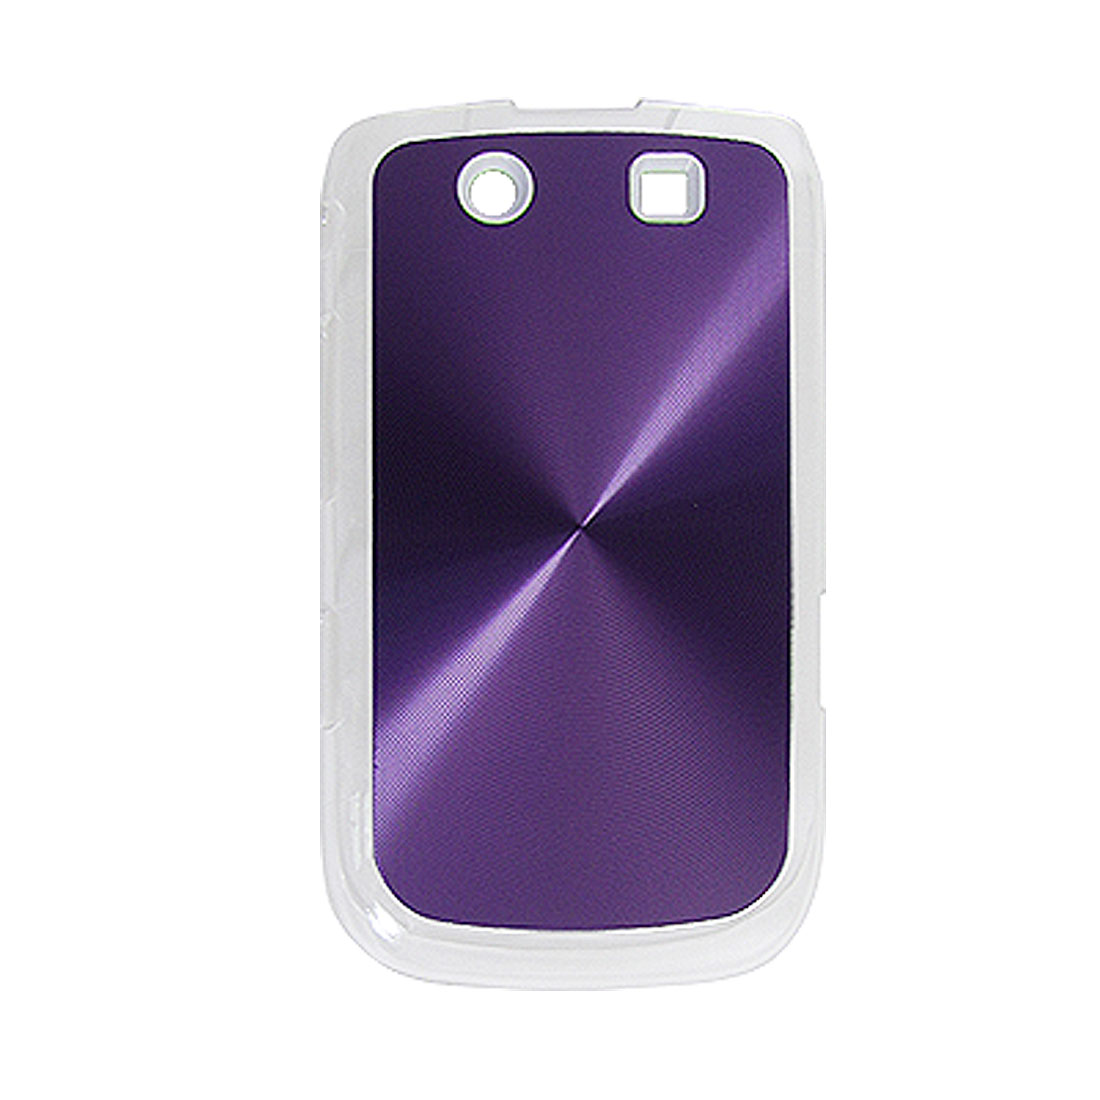 Reflective Purple Hard Plastic Cover for BlackBerry Torch 9800